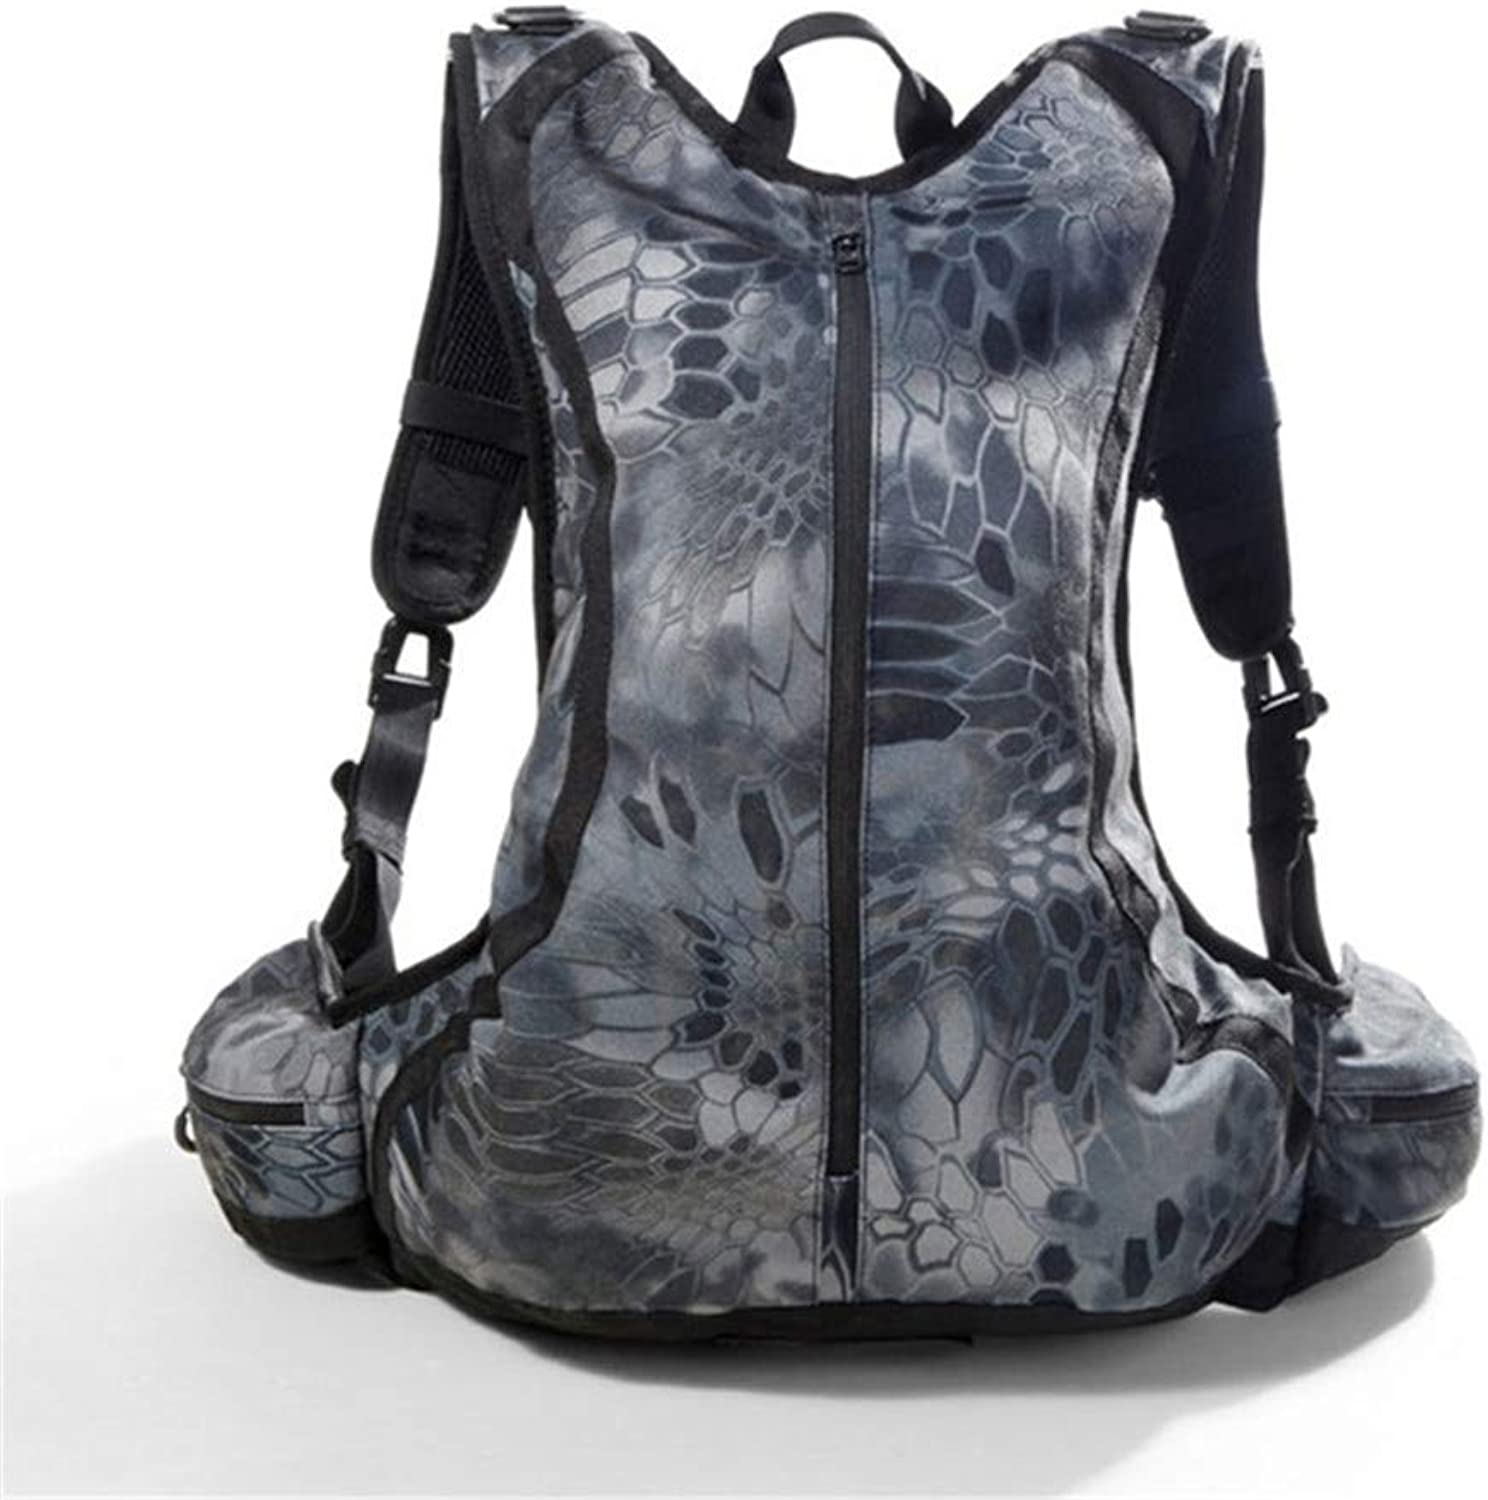 20L Outdoor Waterproof Riding Mountaineering Bag Python Pattern Camouflage Backpack Back Armor Type Hunting Backpack